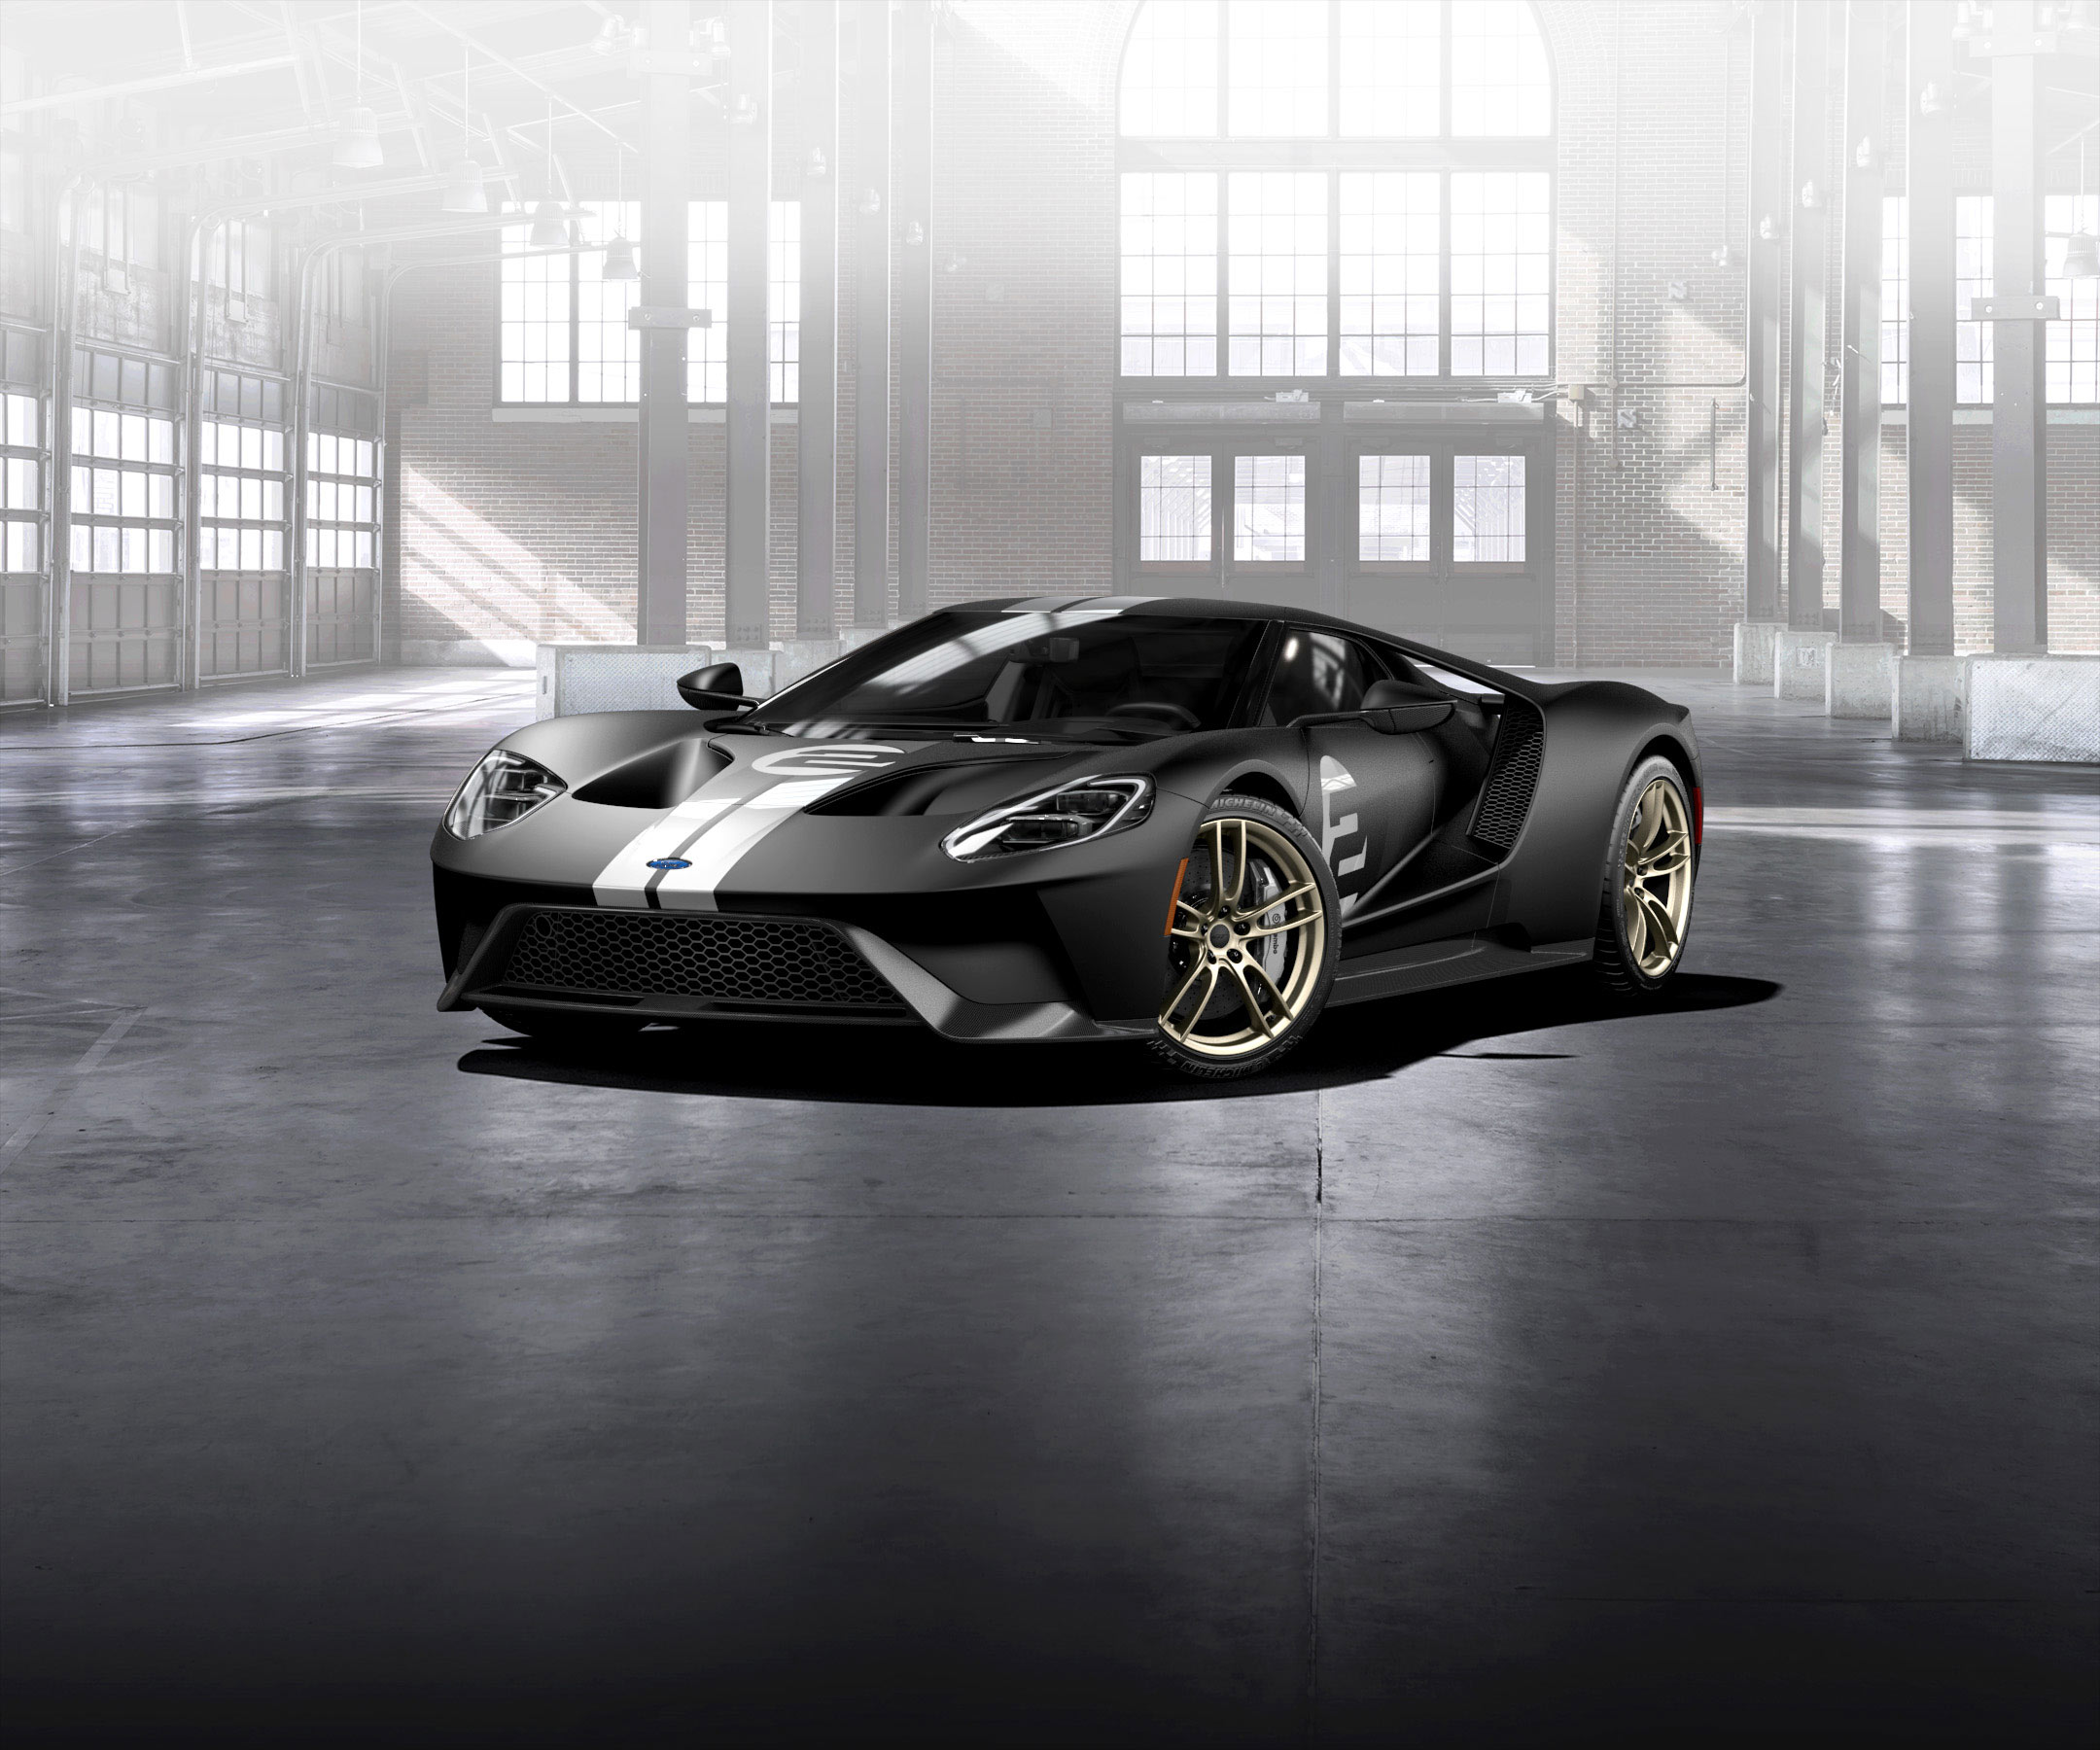 Ford GT 2016 - livery 1966 Heritage Edition - front side-face / profil avant